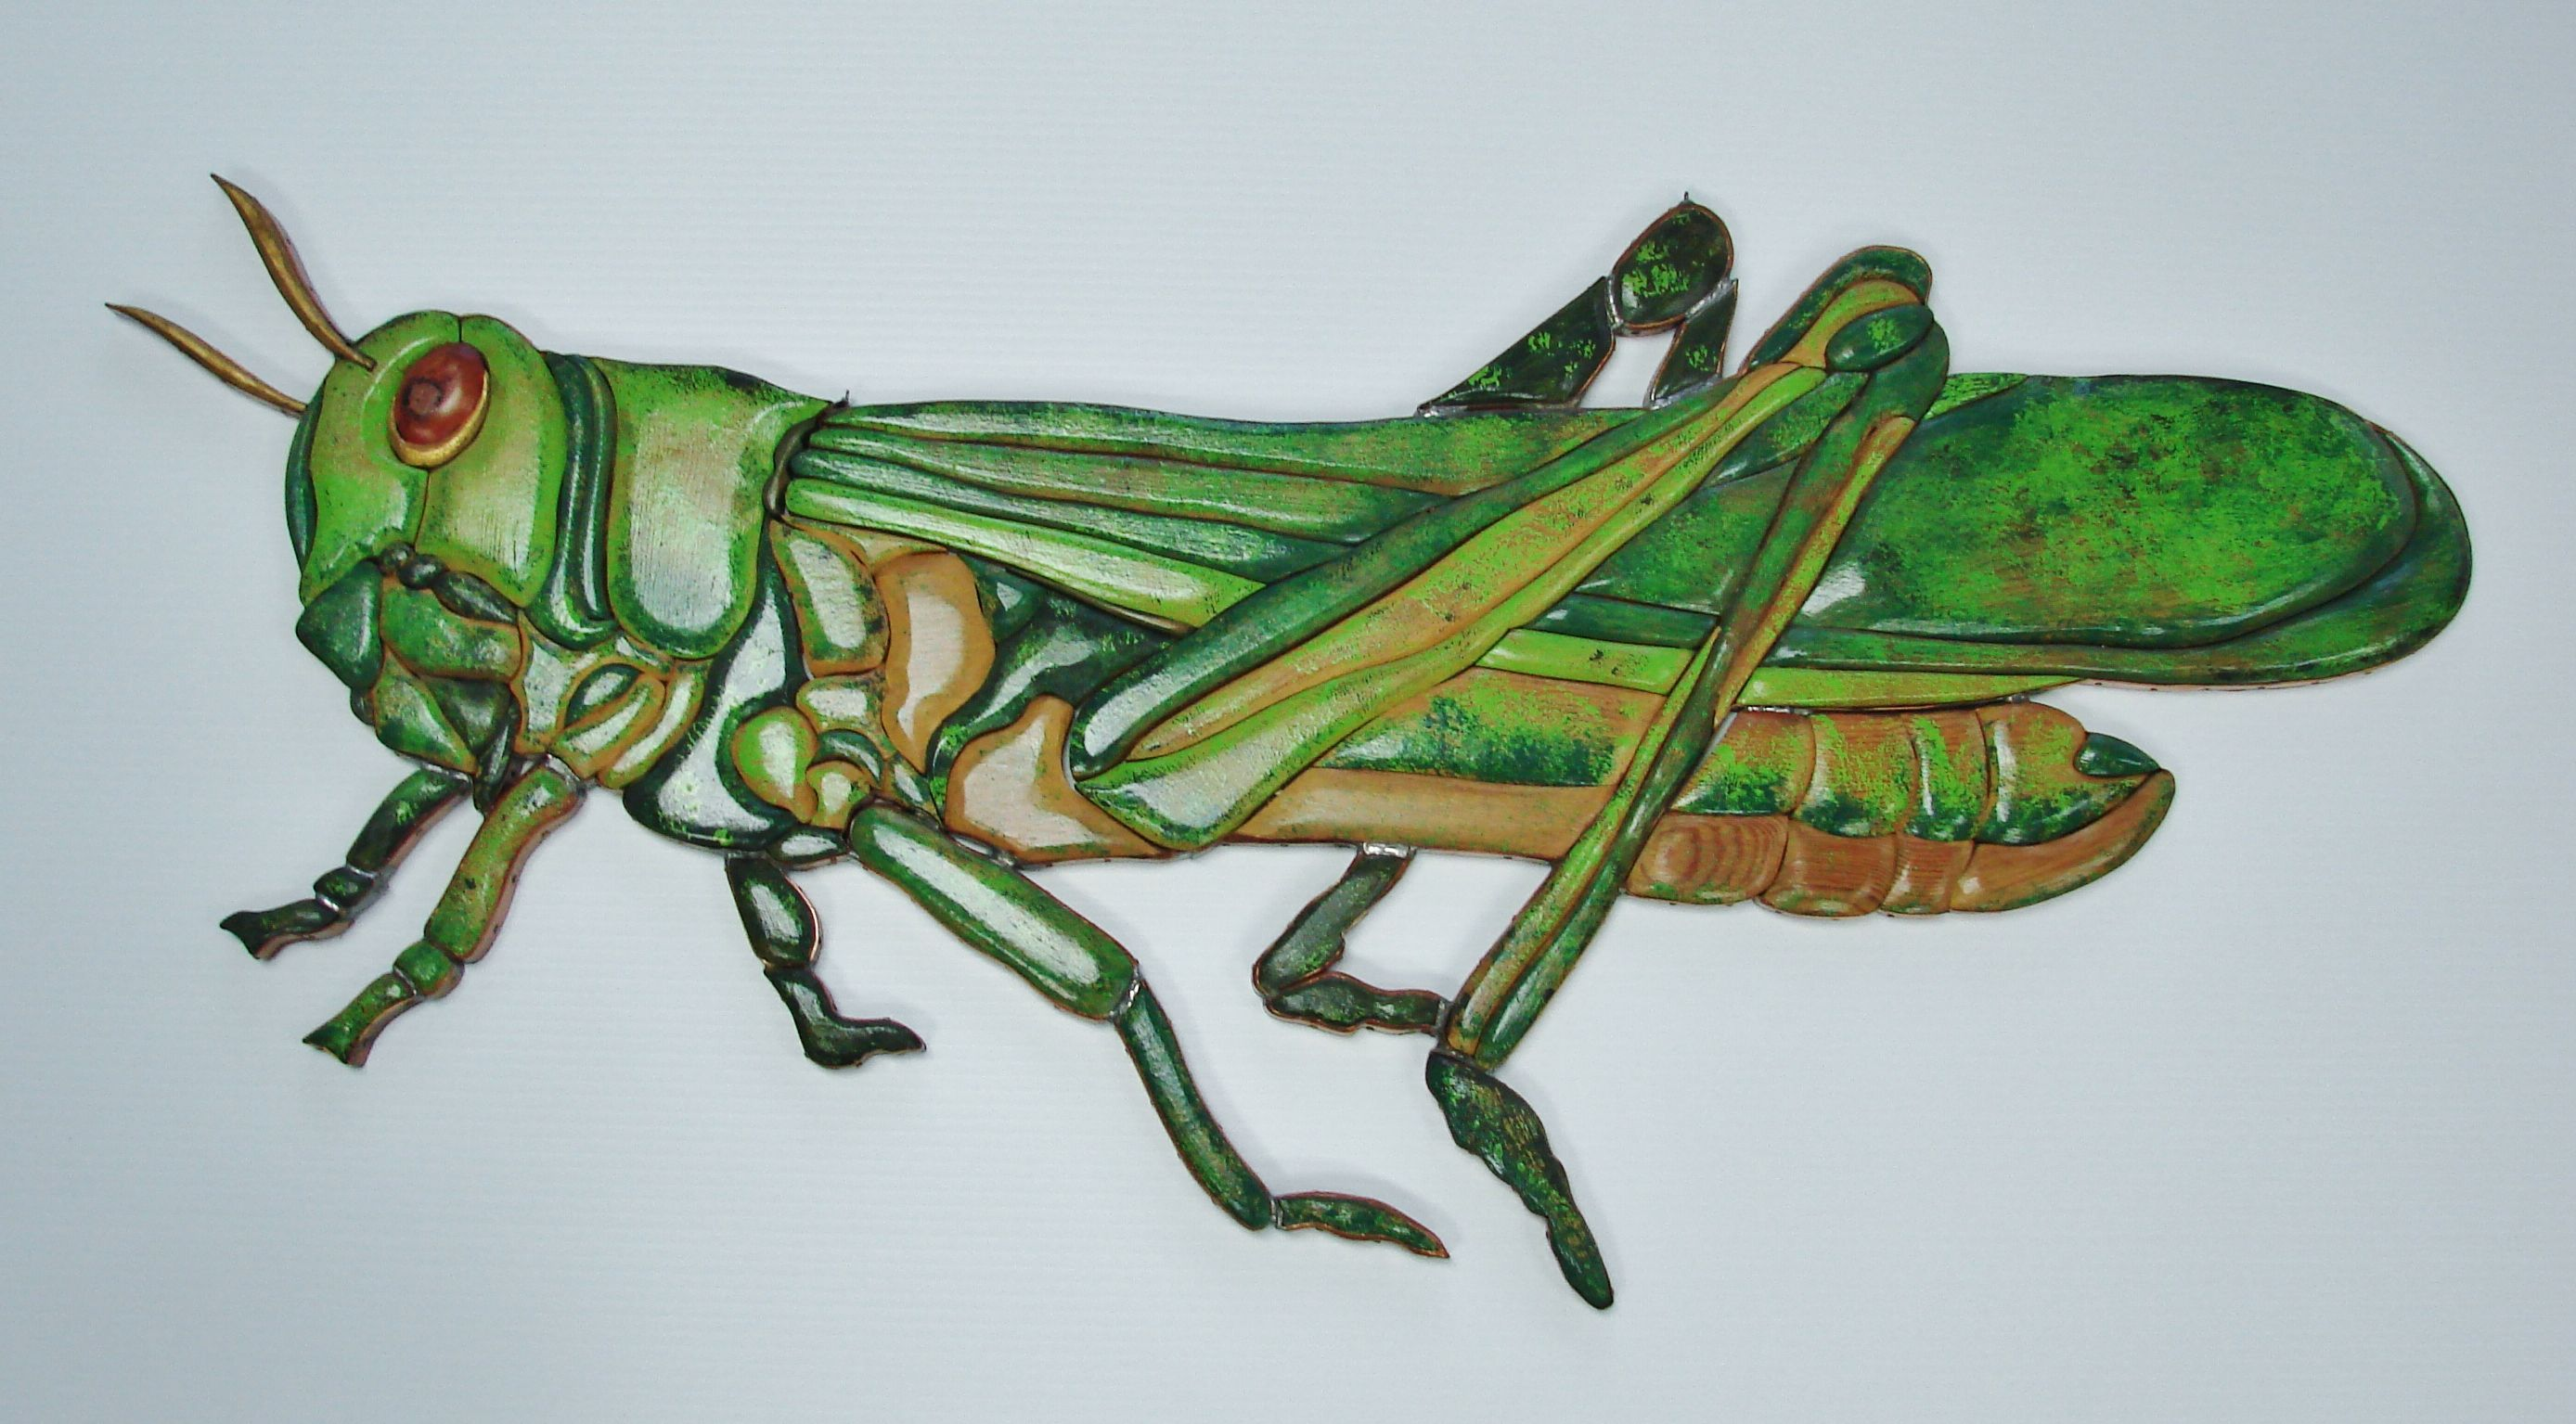 Wood intarsia grasshopper made of pine and painted with acrylic